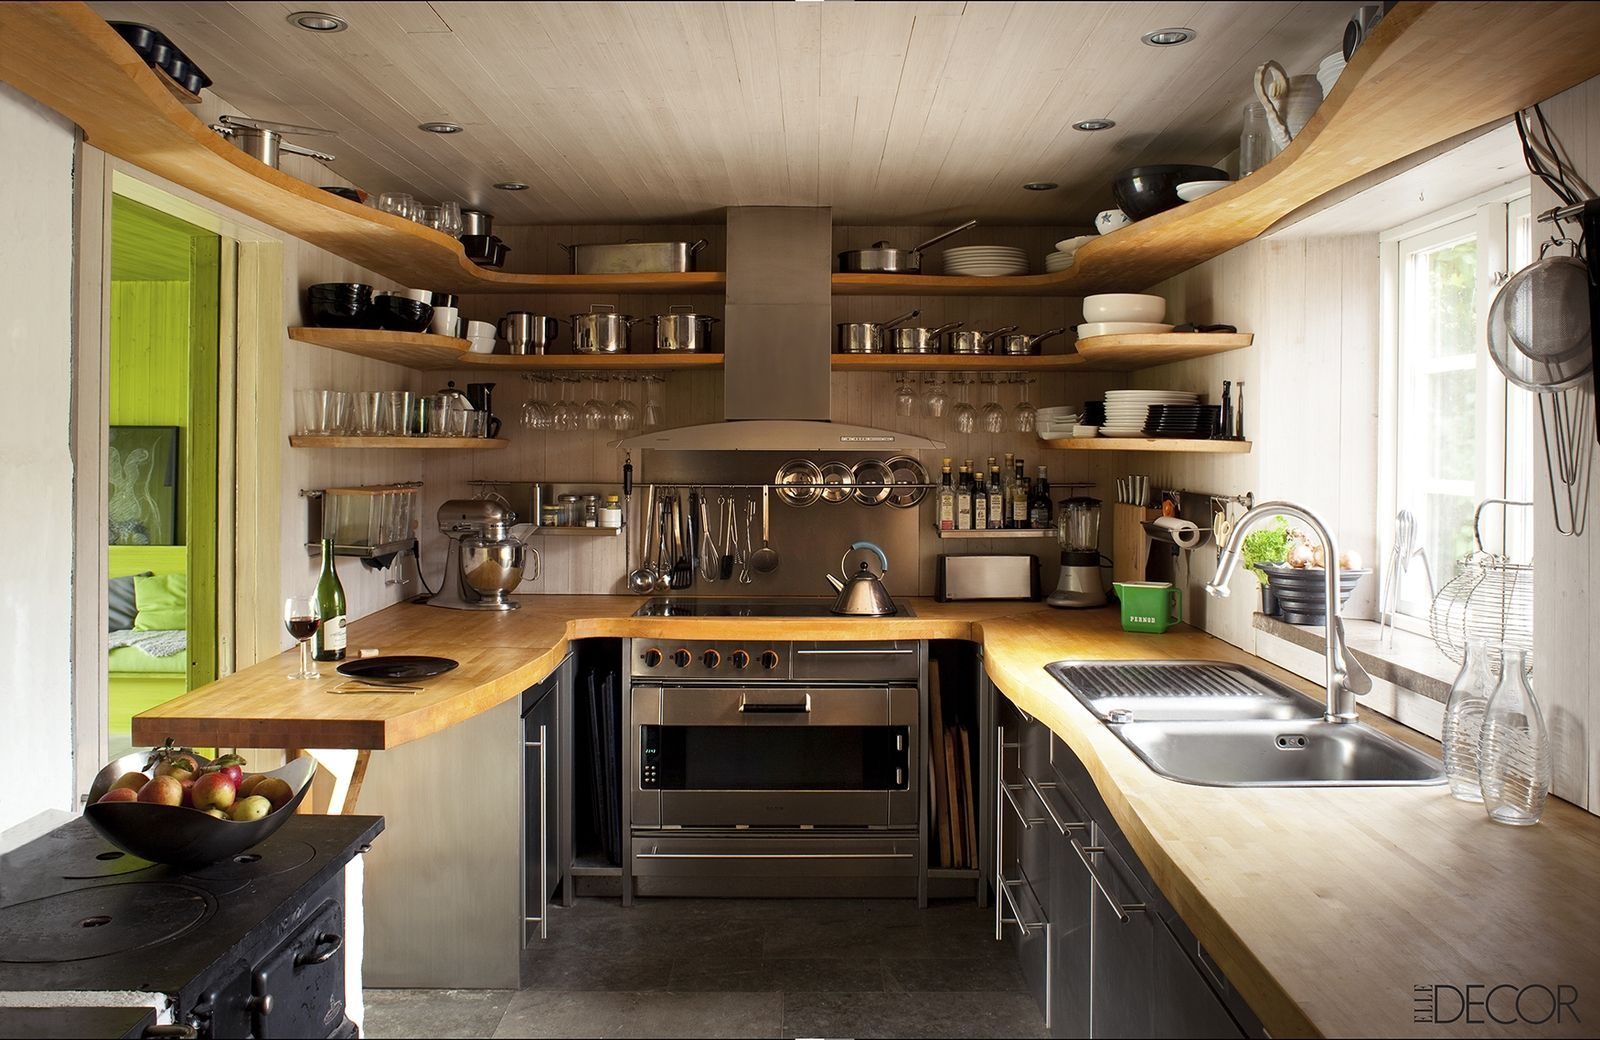 55 Little Kitchens That Will Change Everything You Know About ...